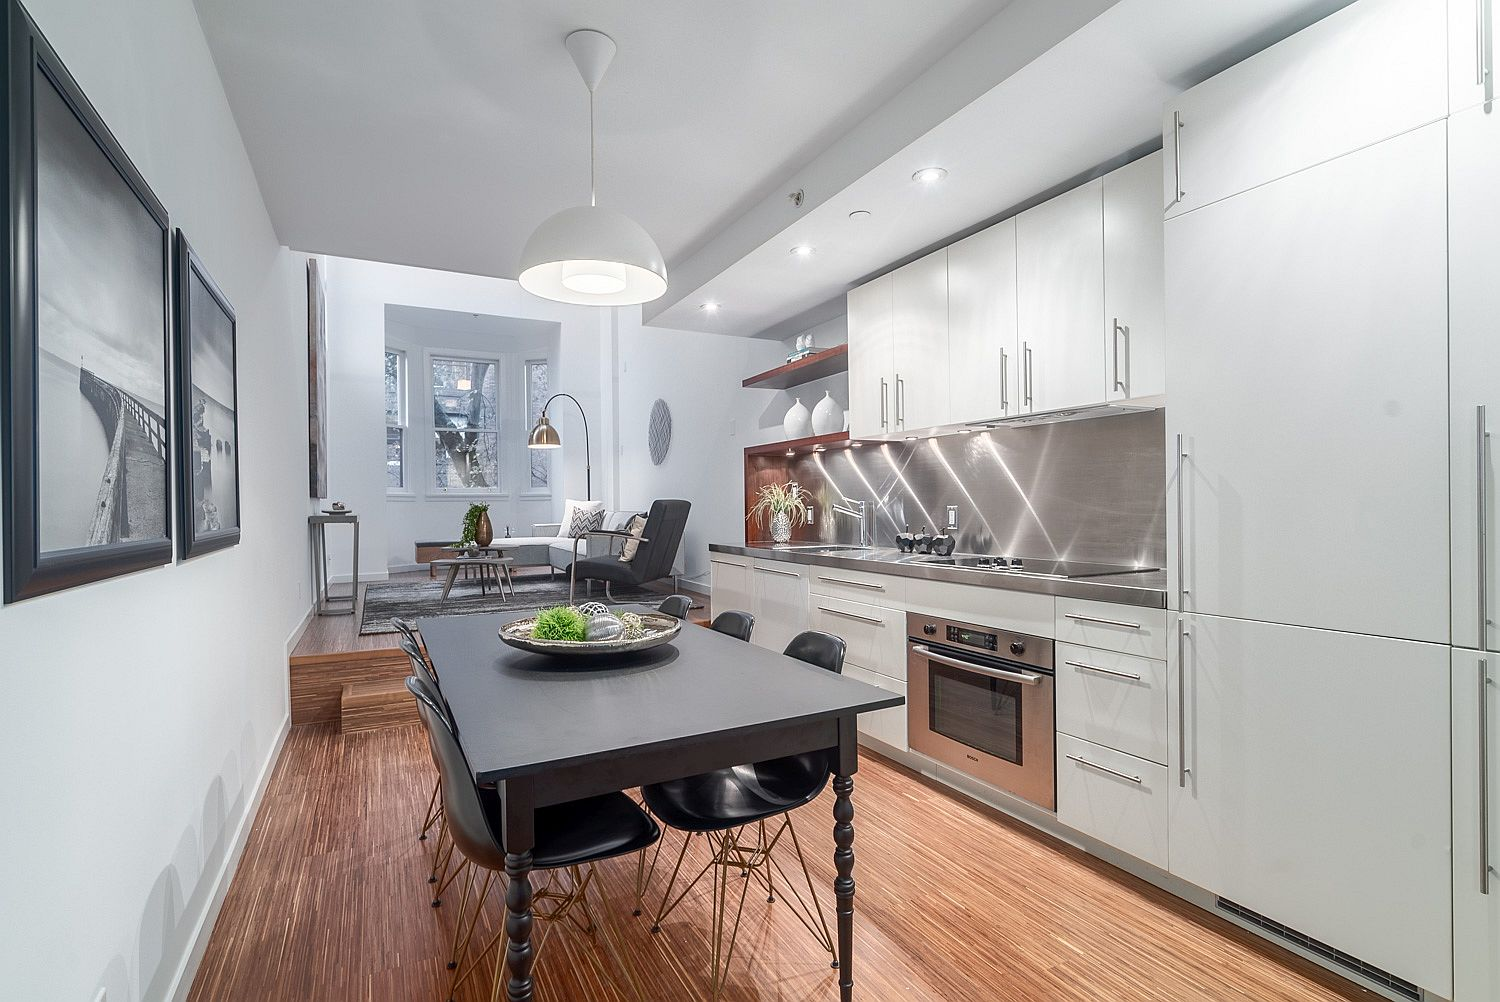 Small kitchen and dining area of the Vancouver Loft